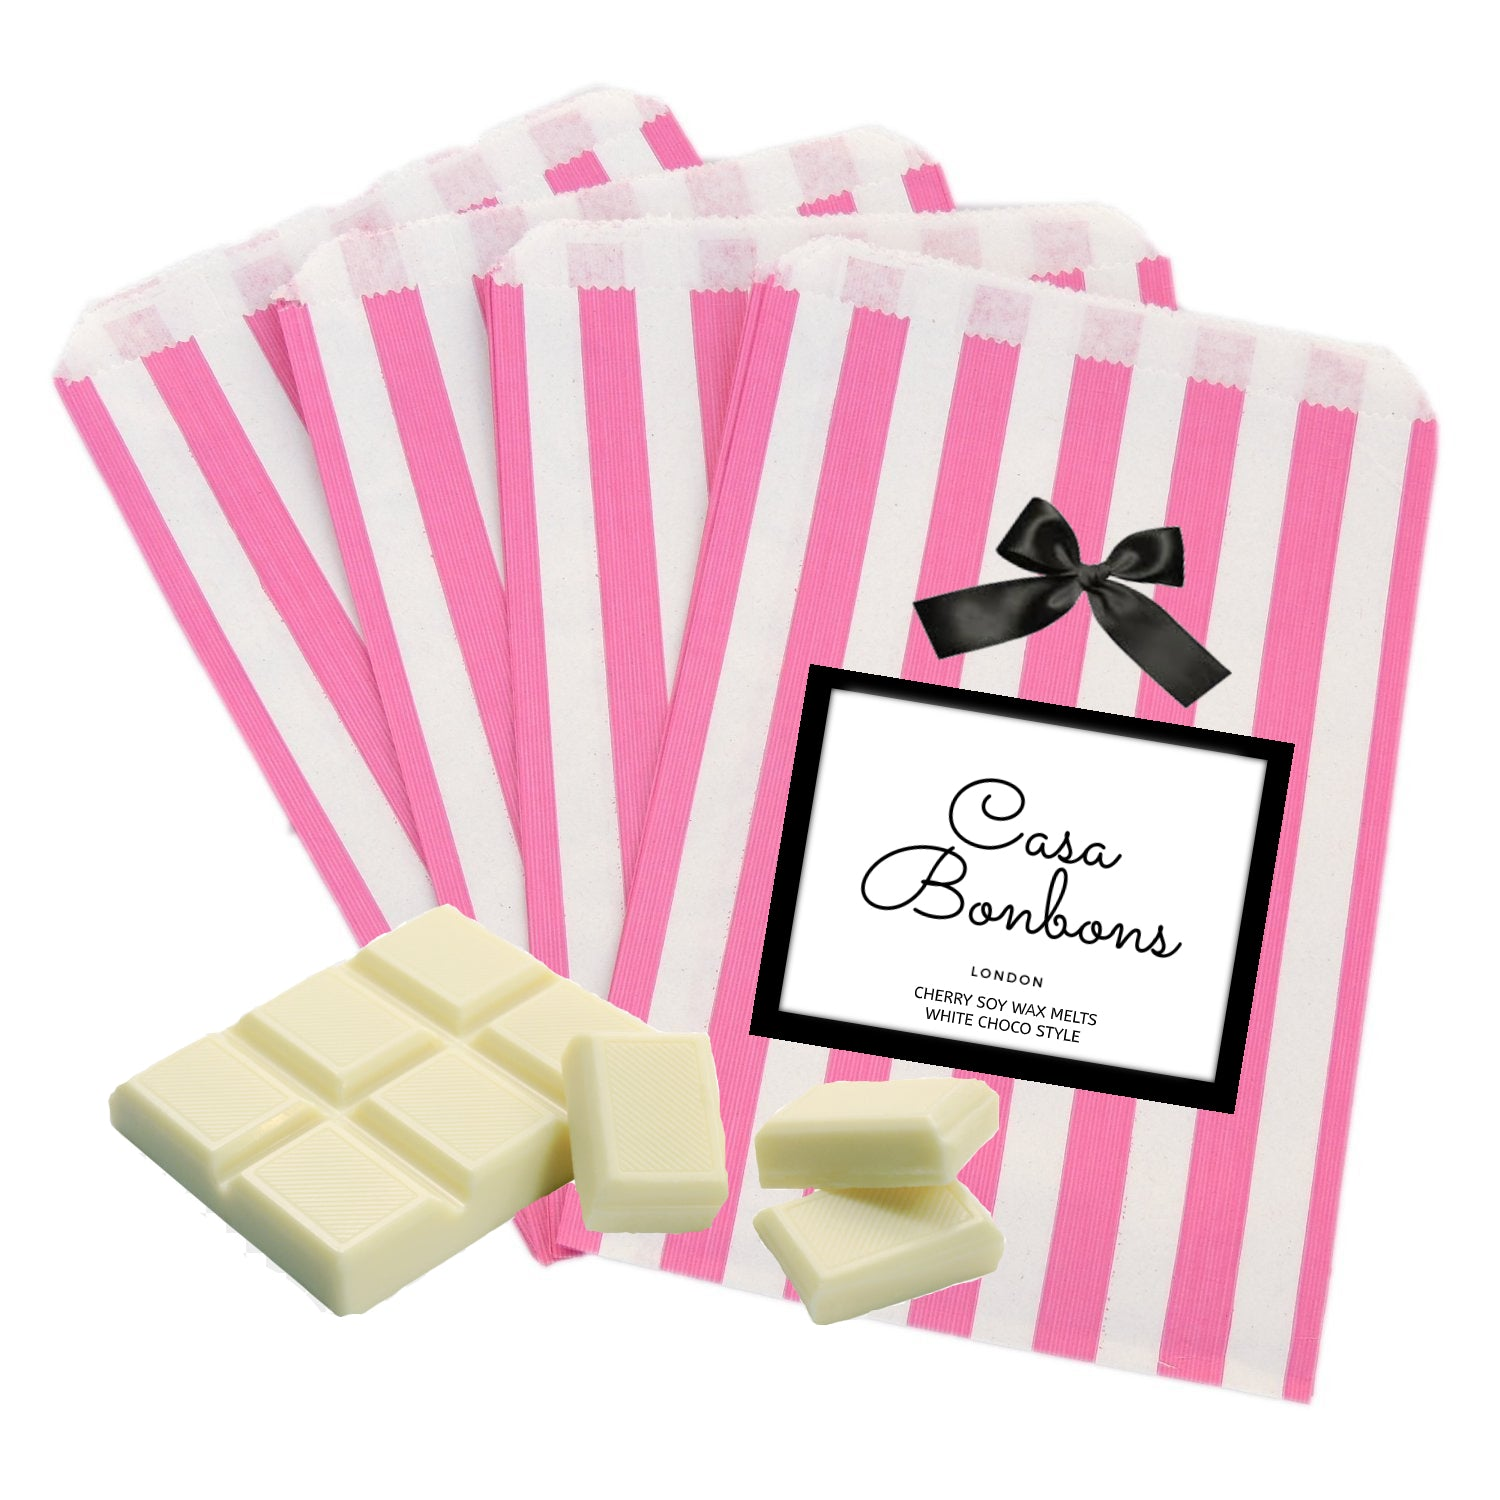 Cherry gentle scented white chocolate style Soy Wax Melts - natoorio